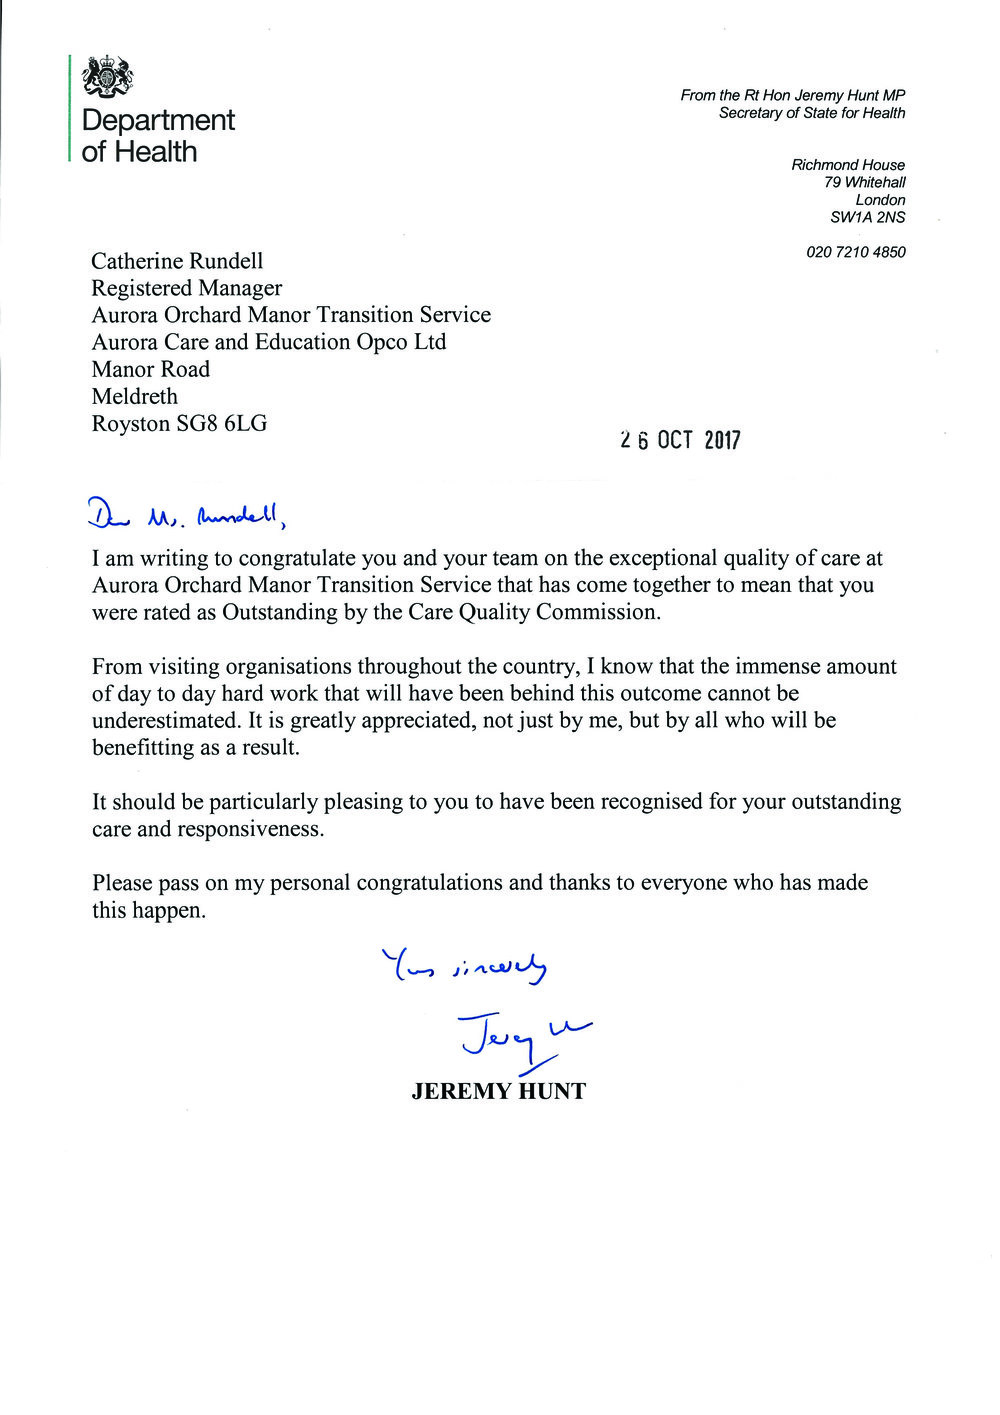 letter received from J. Hunt.jpg